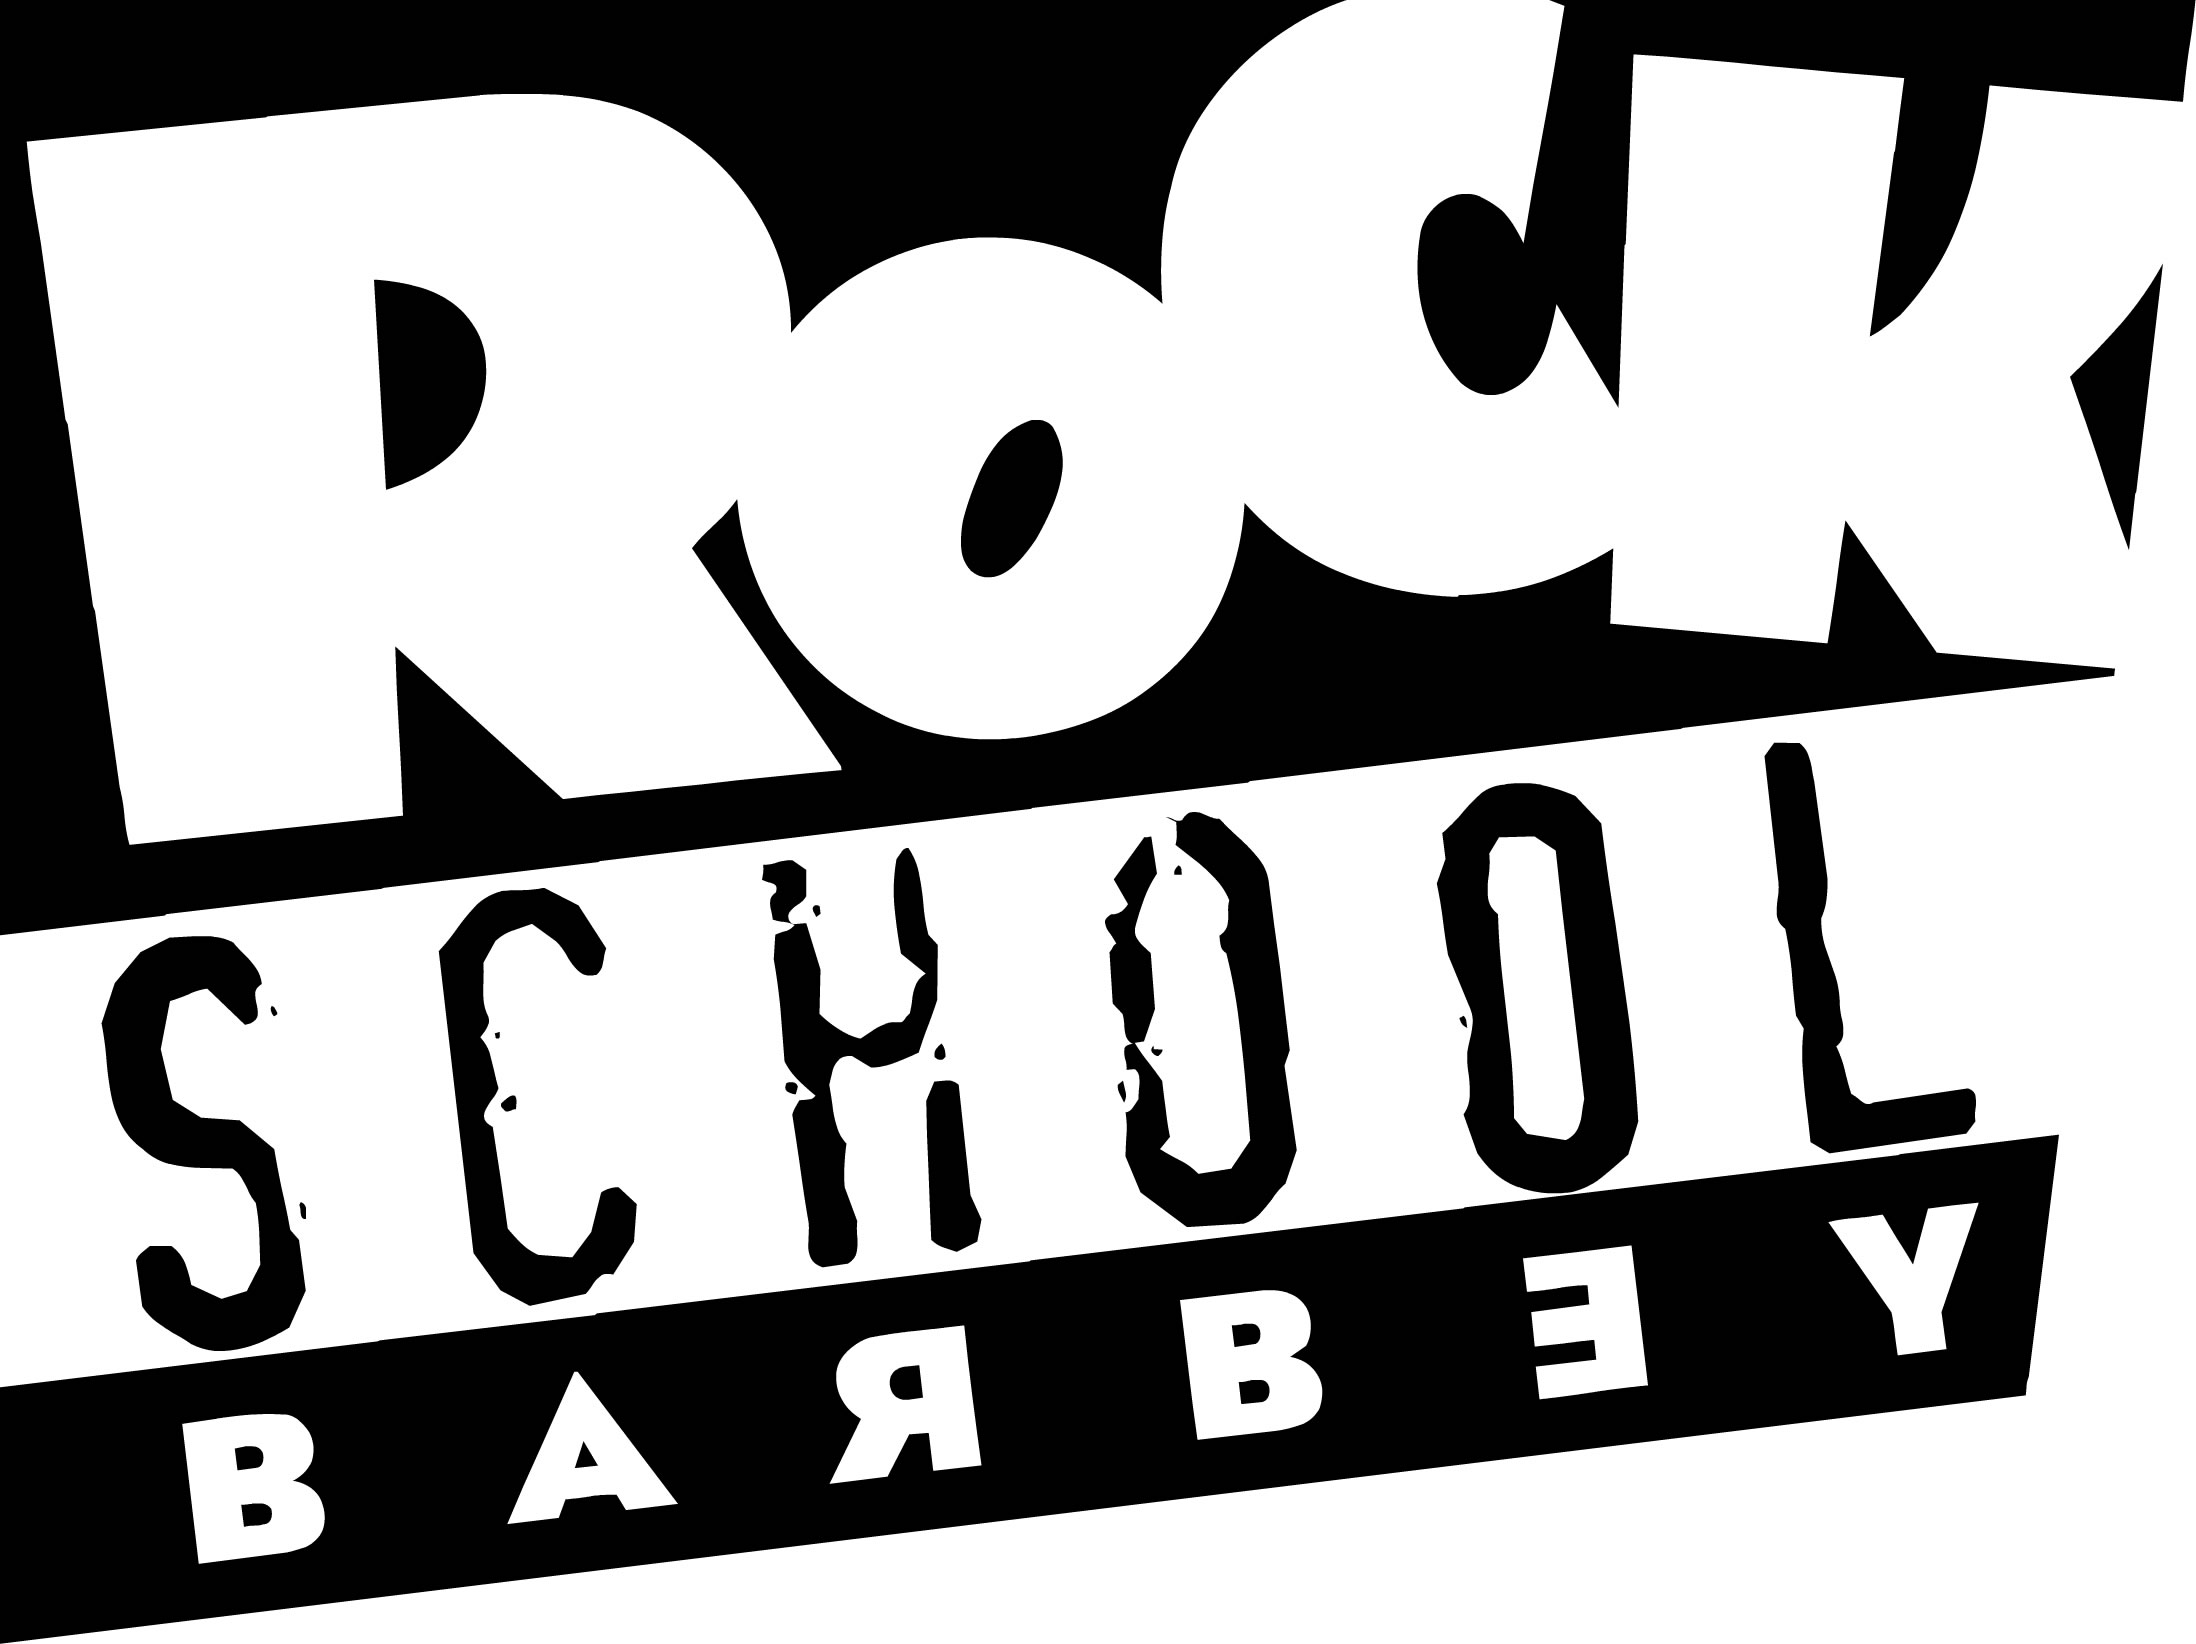 Rockschool Barbey